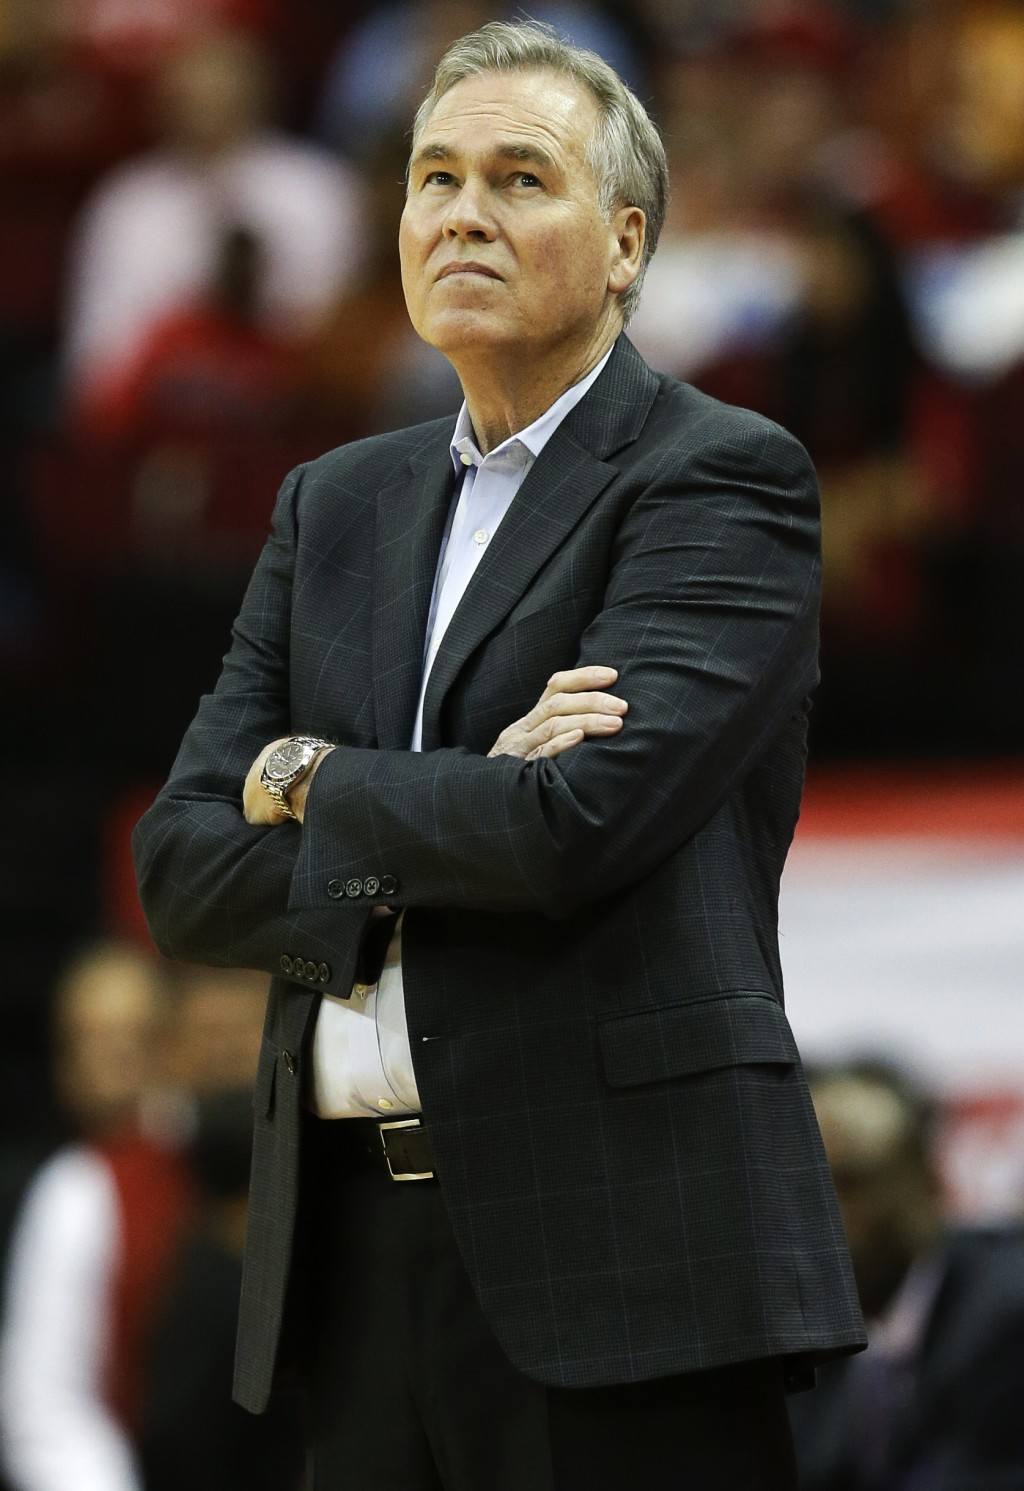 Houston Rockets head coach Mike D'Antoni stands on the sidelines during the first half of an NBA basketball game against the San Antonio Spurs, Saturd...